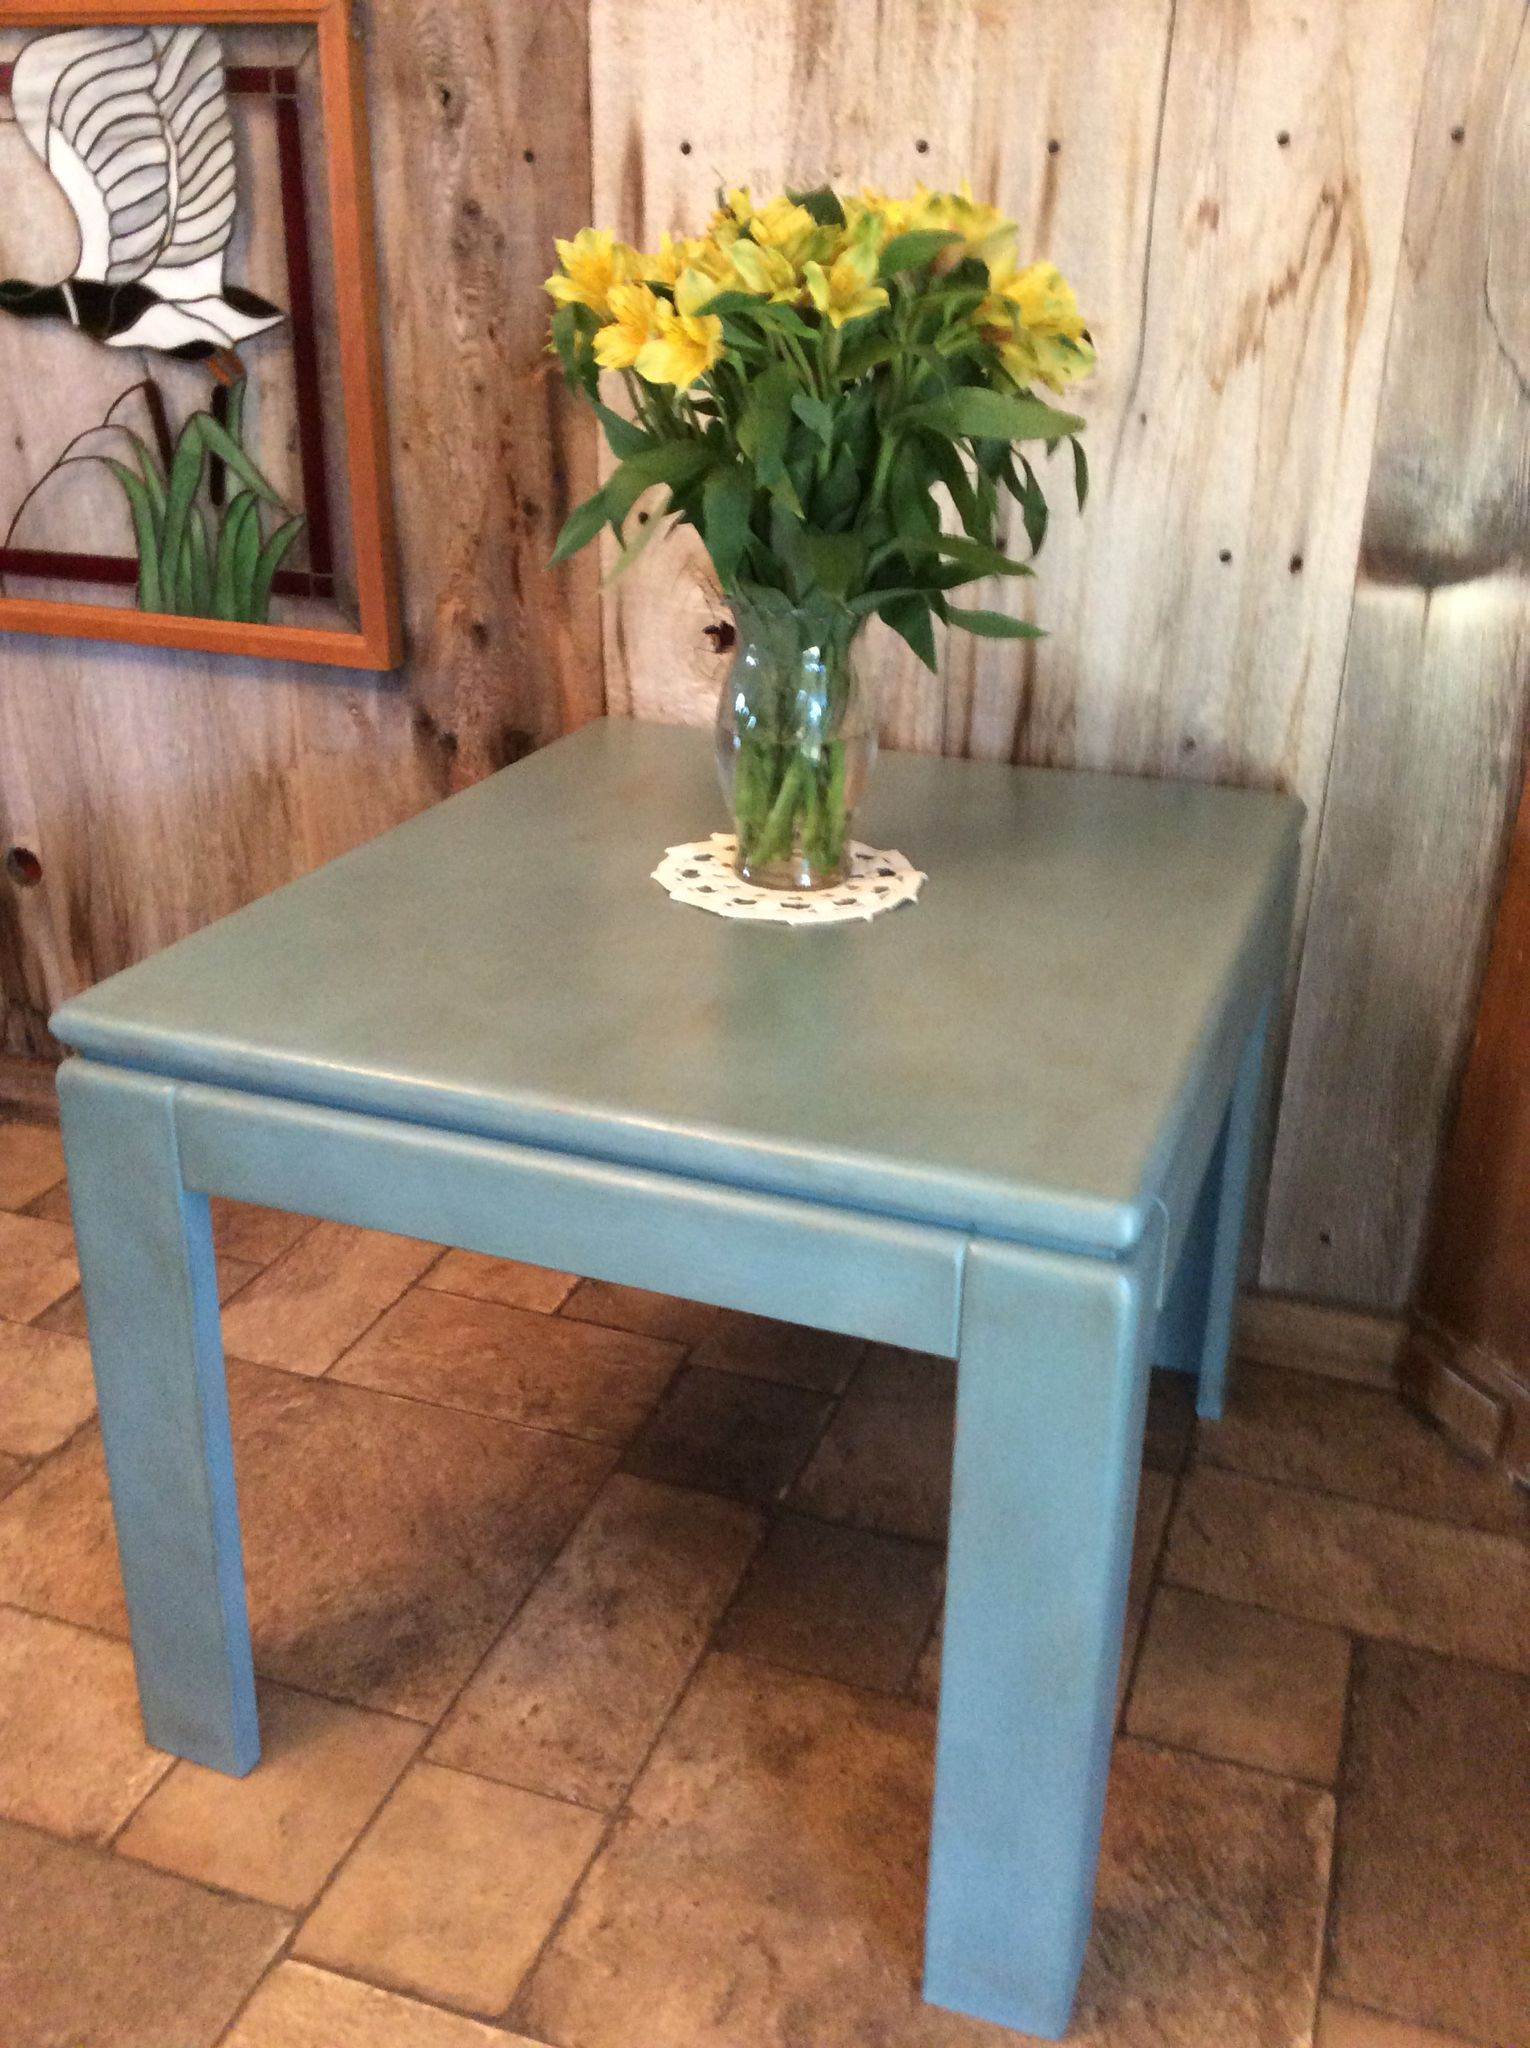 This End Table I Did In Amy Howard One Step Paint In Vintage Affliction,  Waxed